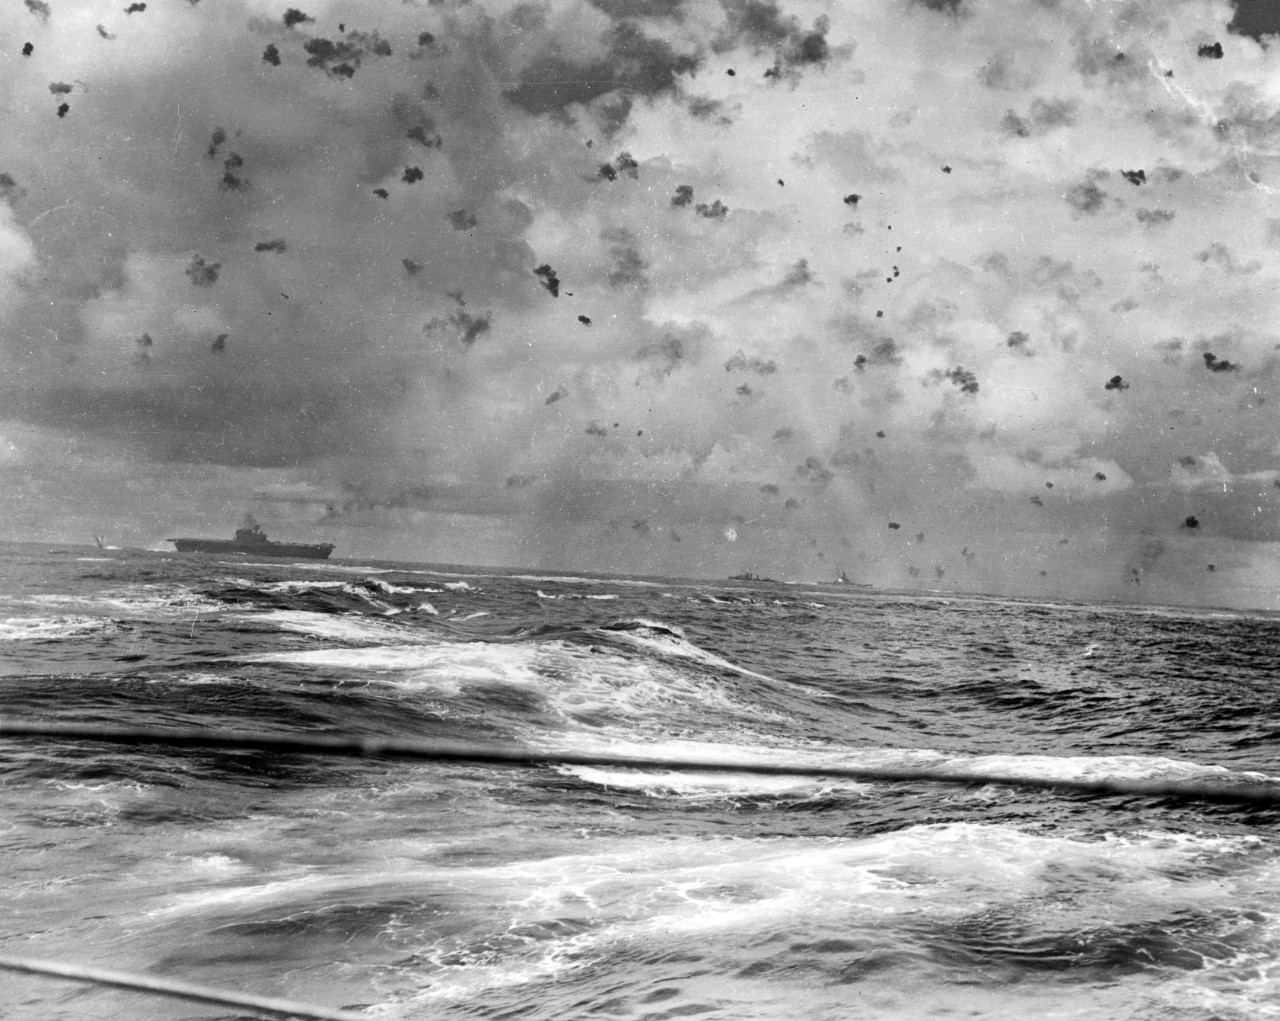 Antiaircraft gunners desperately fill the sky with flak and ships churn the water as they maneuver at speed and fight off the Japanese attackers, 26 October 1942. At least two enemy planes are visible above Enterprise, and the blast of South Dakota's starboard 5-inch guns mark the ship (right center). (U.S. Navy Photograph 80-G-20989, National Archives and Records Administration, Still Pictures Branch, College Park, Md.)